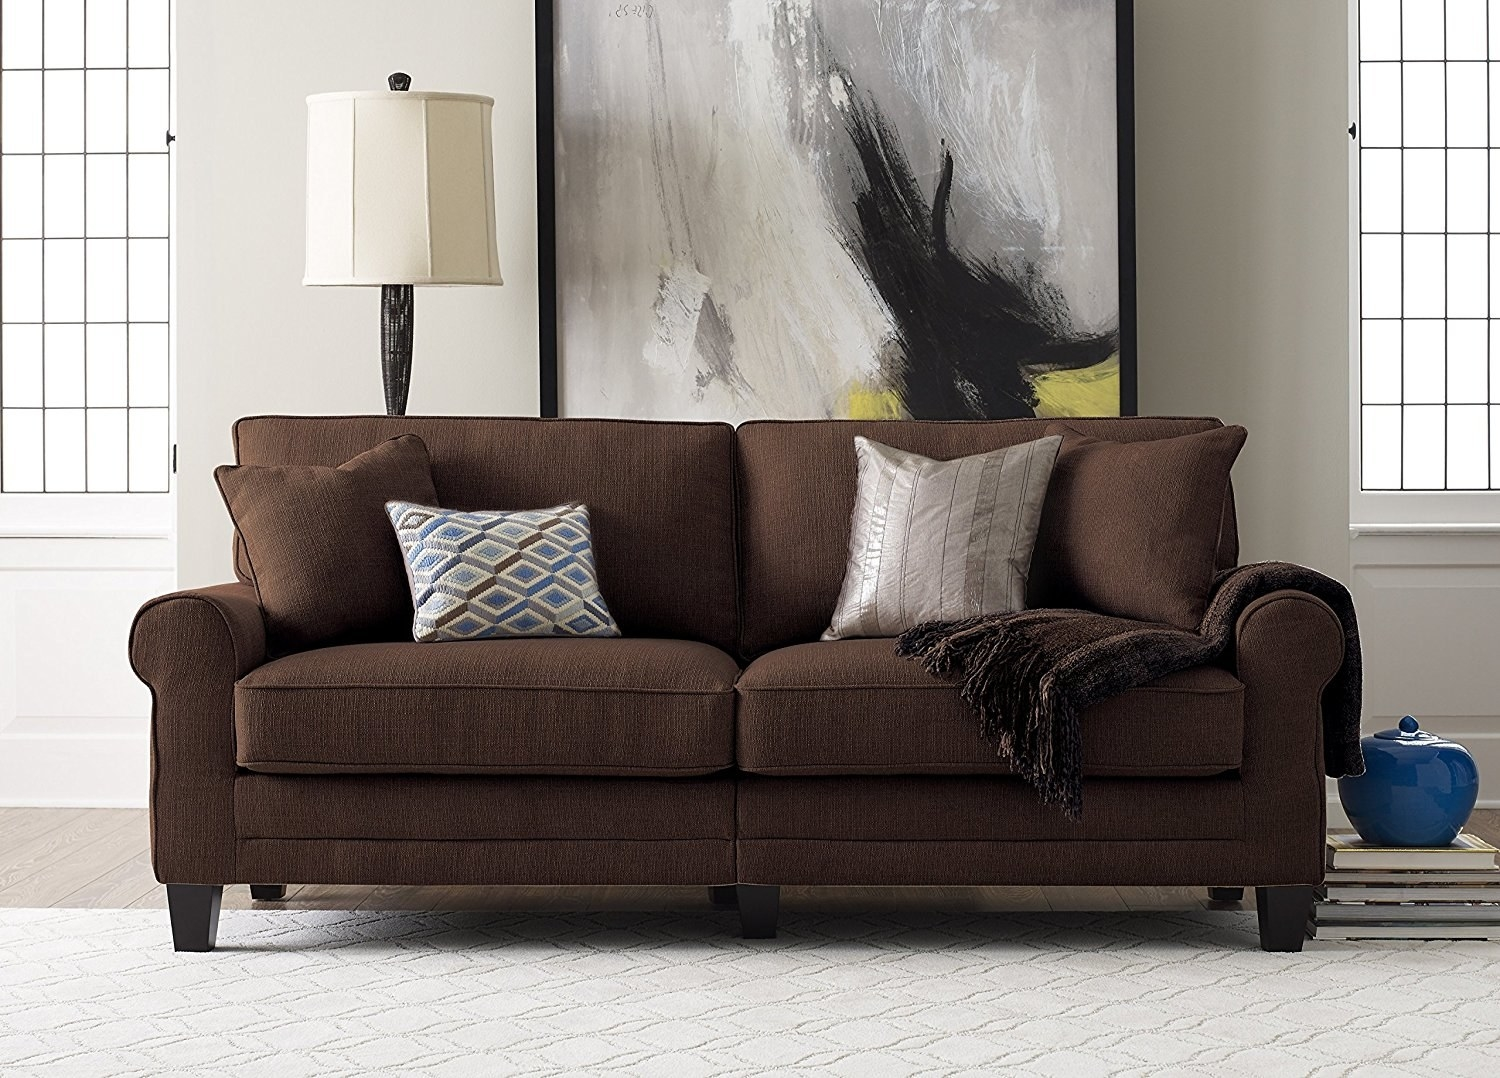 A Brown Sofa Covered In A Velvet Textured Fabric.